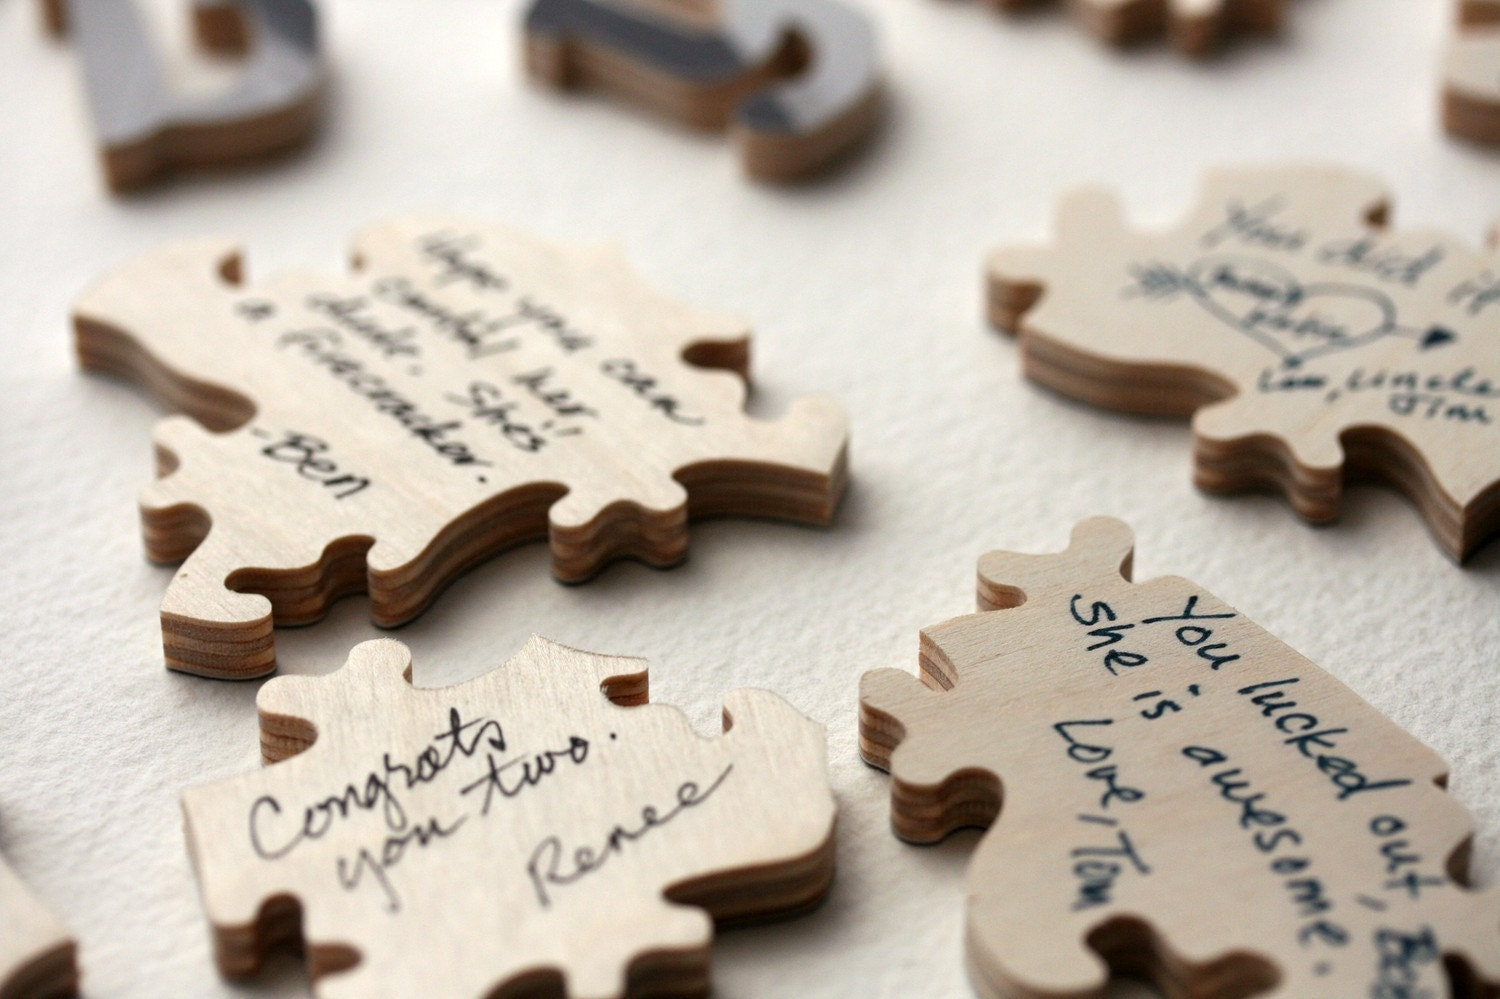 Wedding Guest Book Puzzle, photo, wood, wooden, personalized, figurals, words, 126-150 pieces, 16 x 20 inches - 180 TO 215 GUESTS